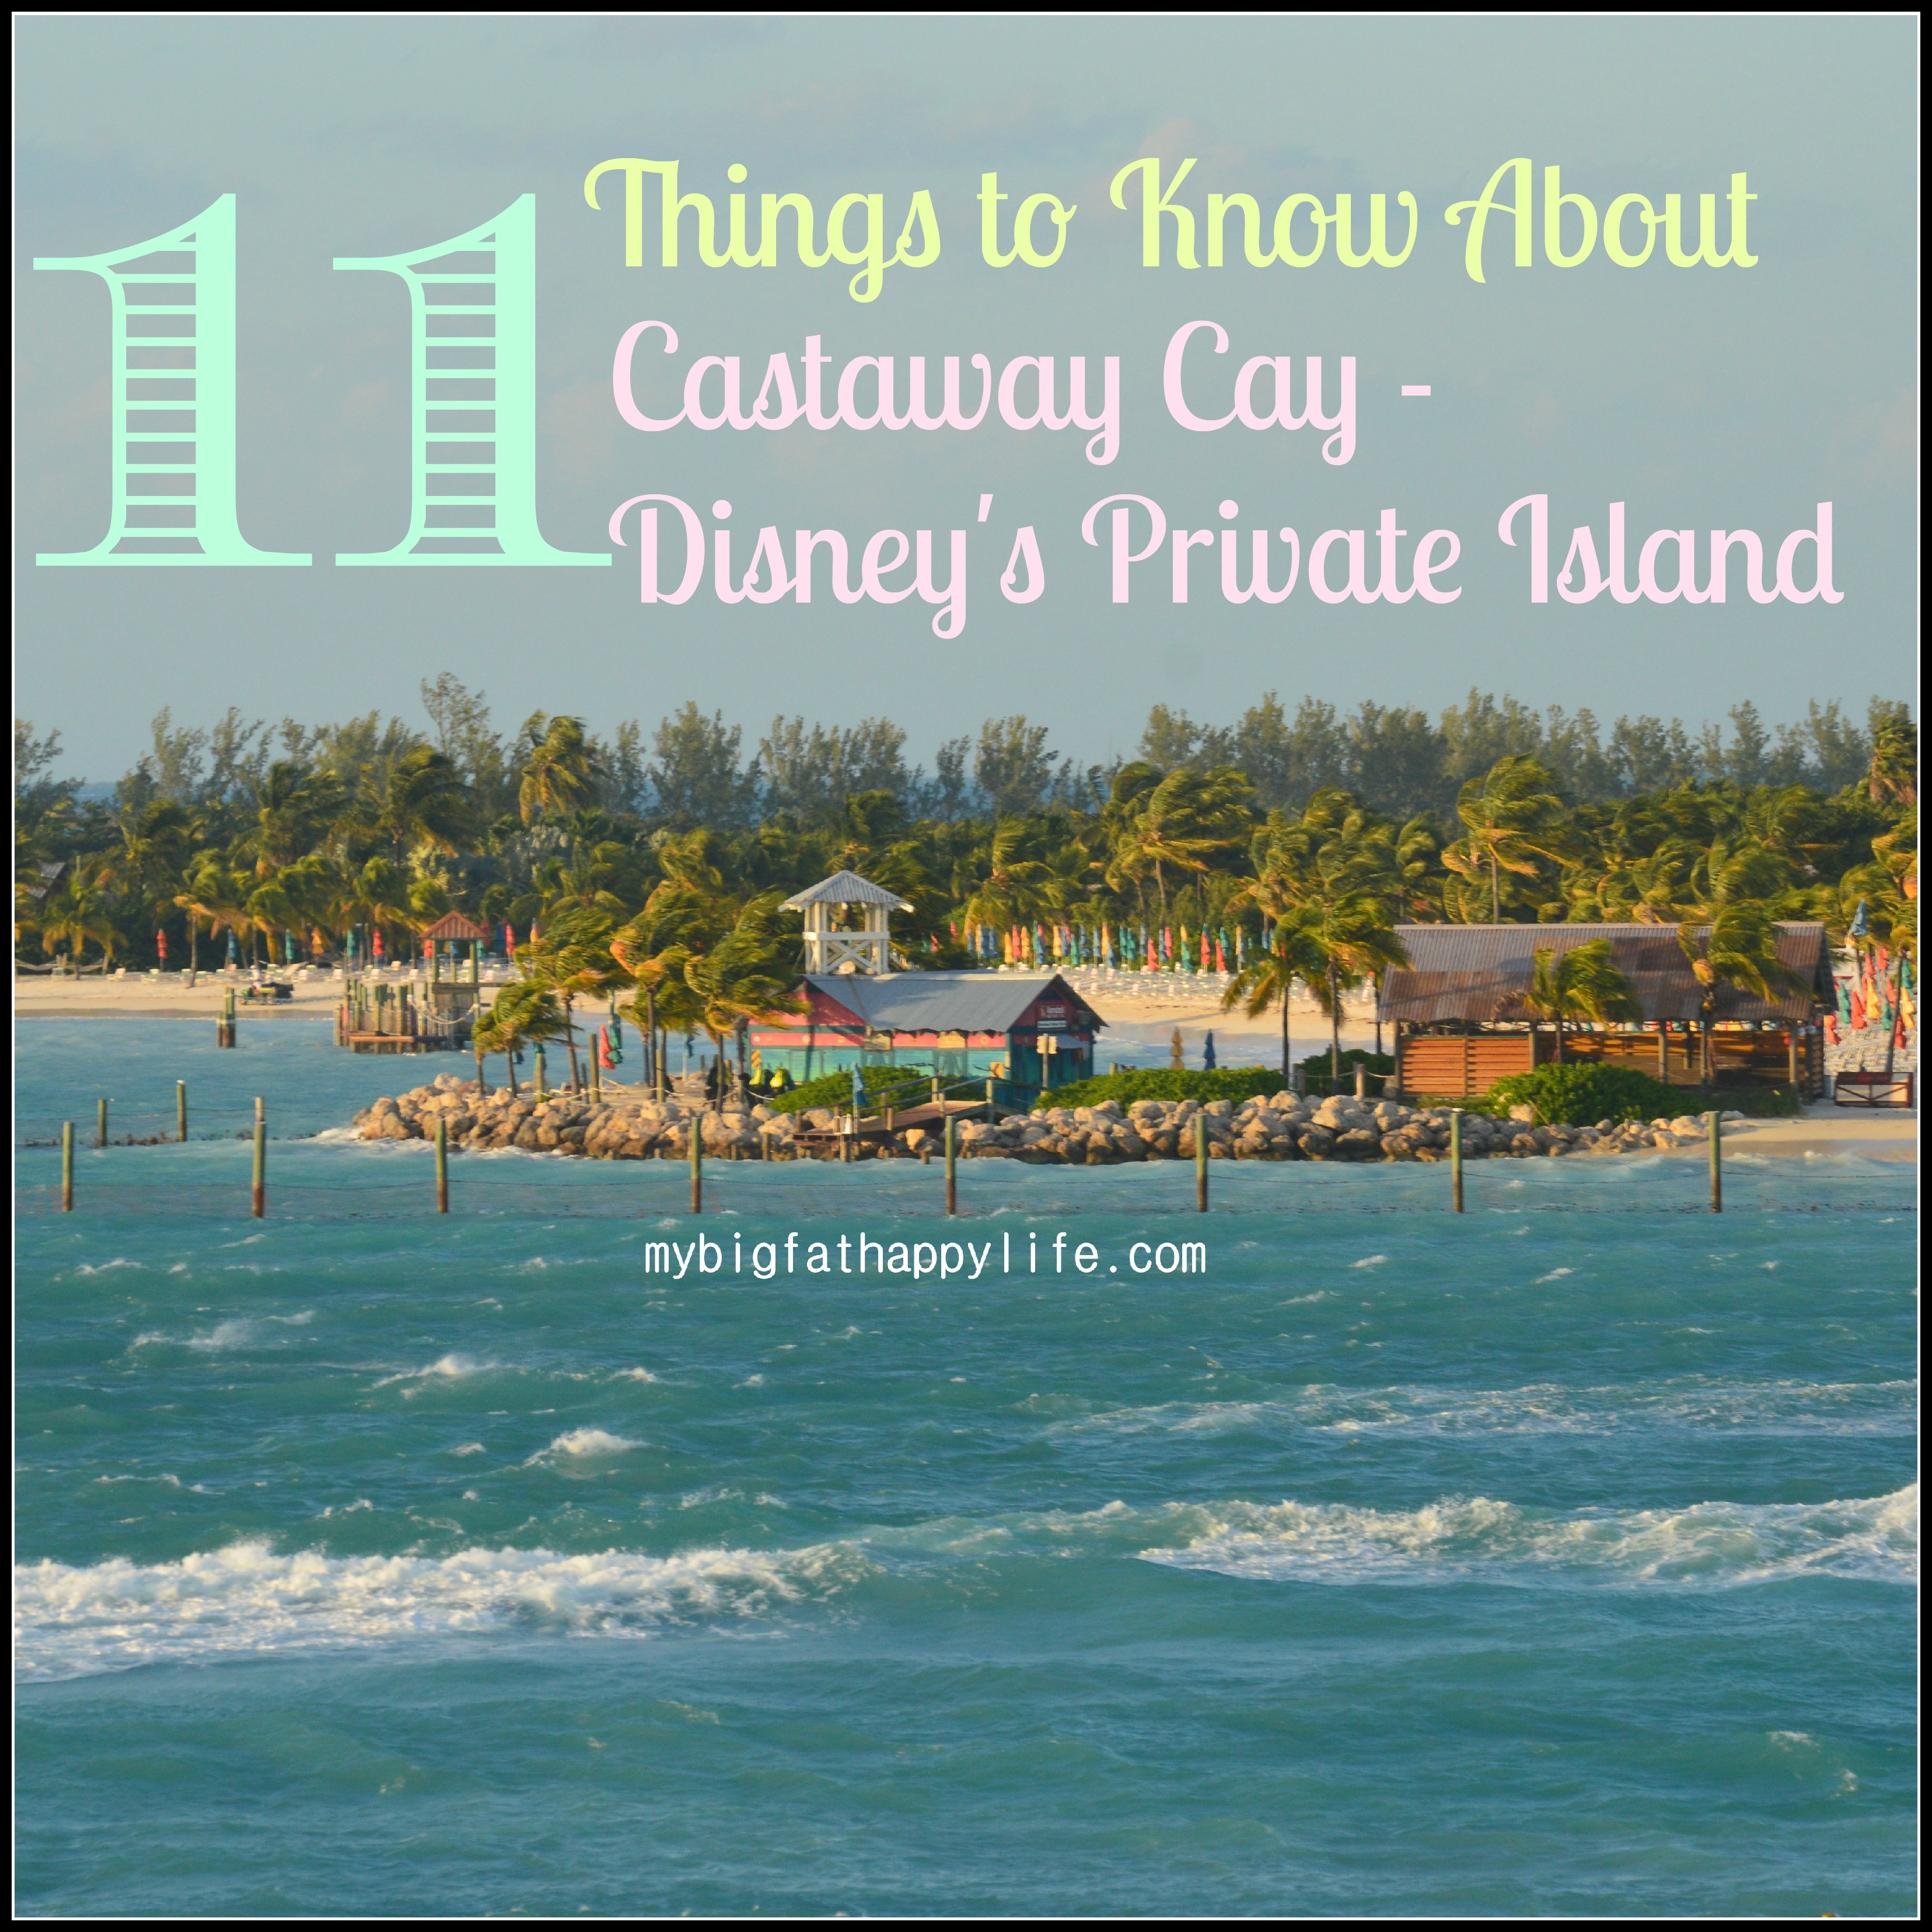 Places To Visit In Christmas Island: 11 Things To Know About Castaway Cay